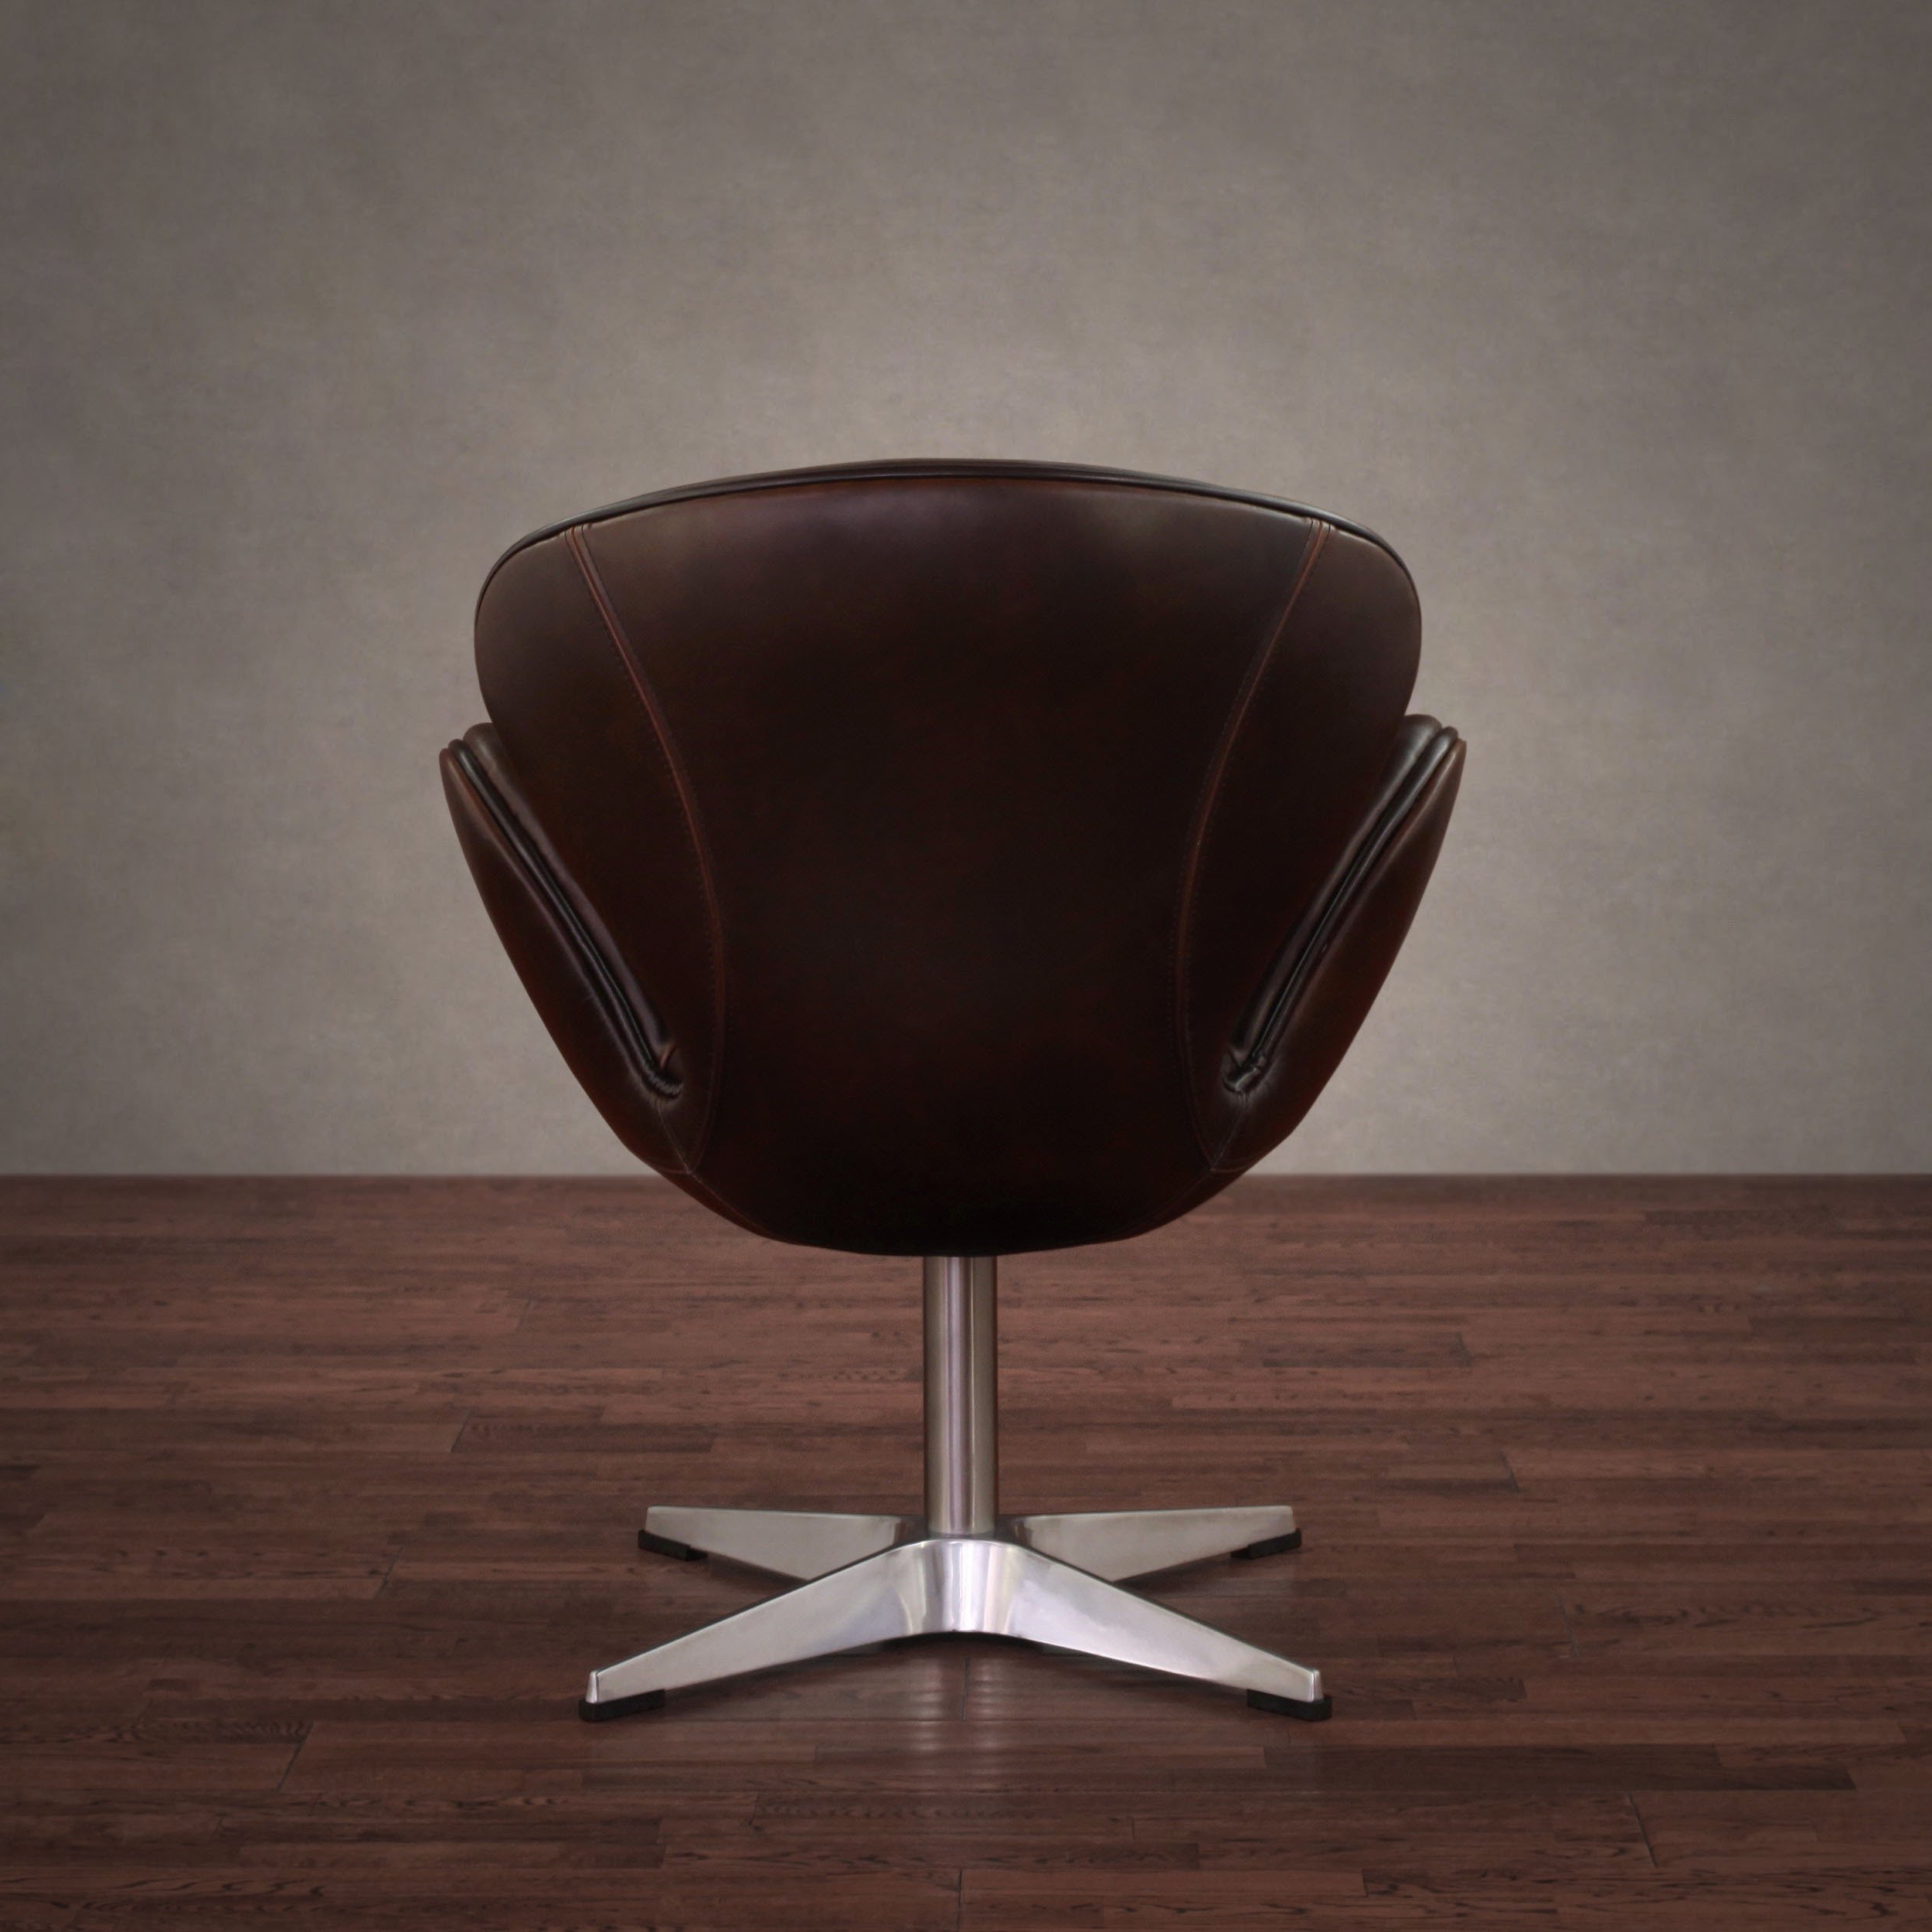 Famous Shop Amelia Vintage Tobacco Leather Swivel Chair – Free Shipping Intended For Swivel Tobacco Leather Chairs (Gallery 3 of 20)